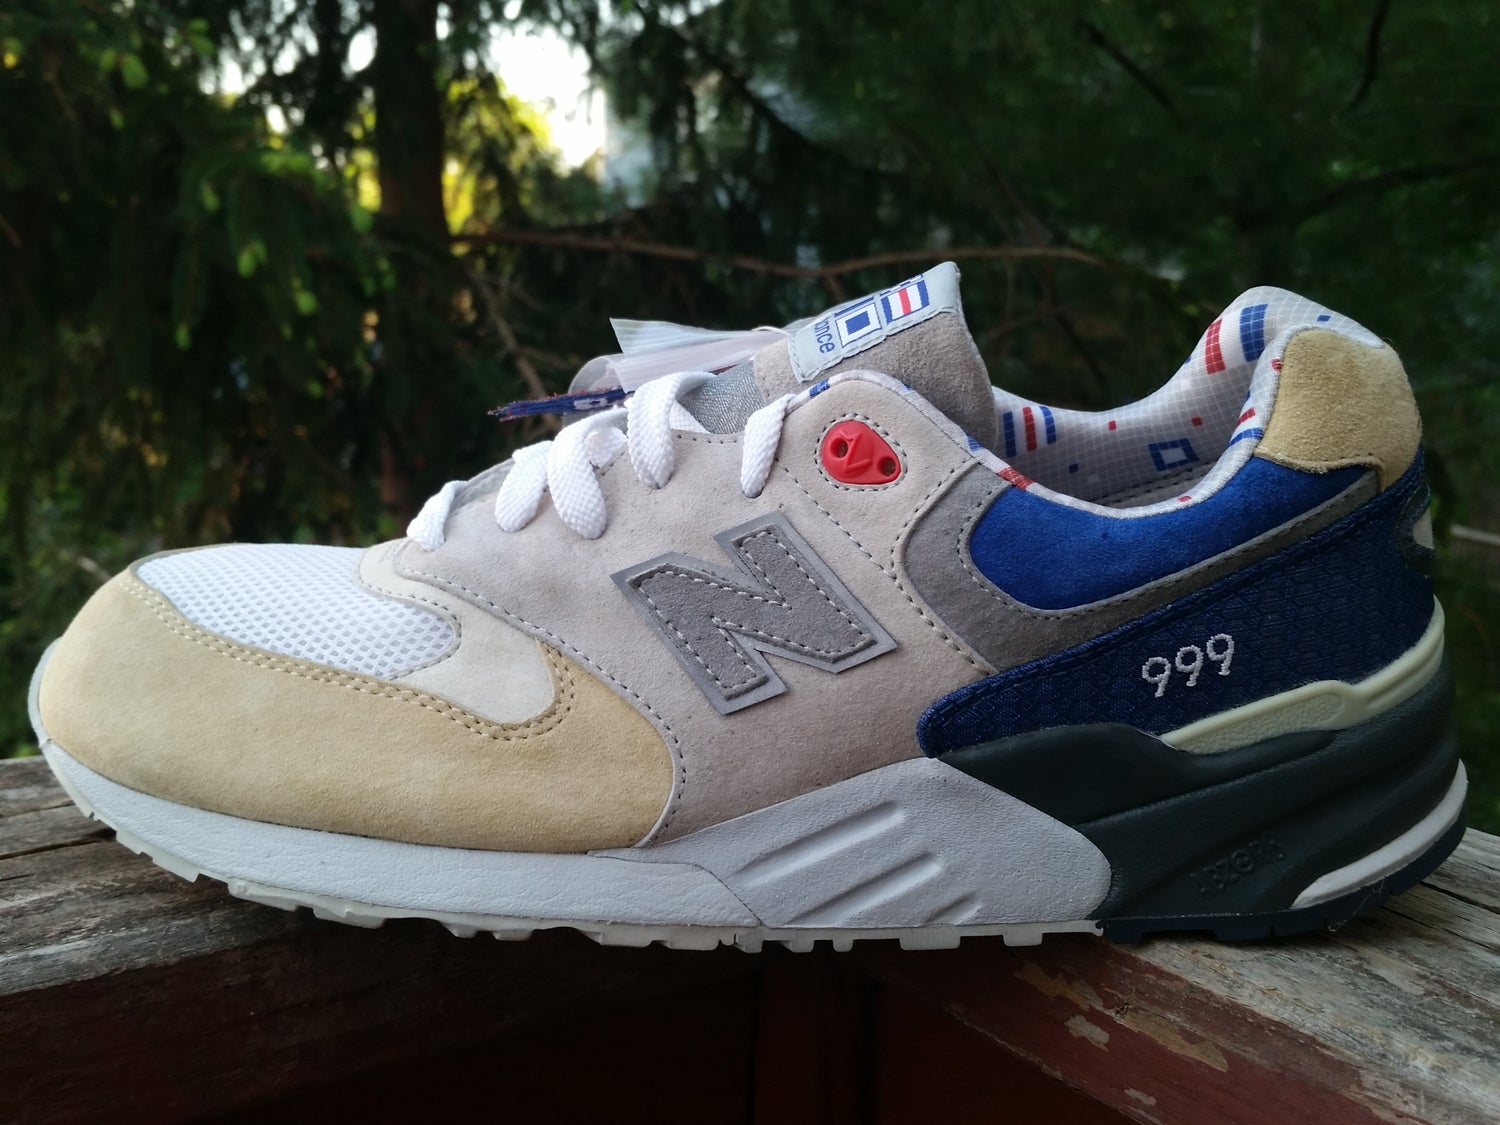 Image of New Balance x Concpts 999 Kennedy Sample